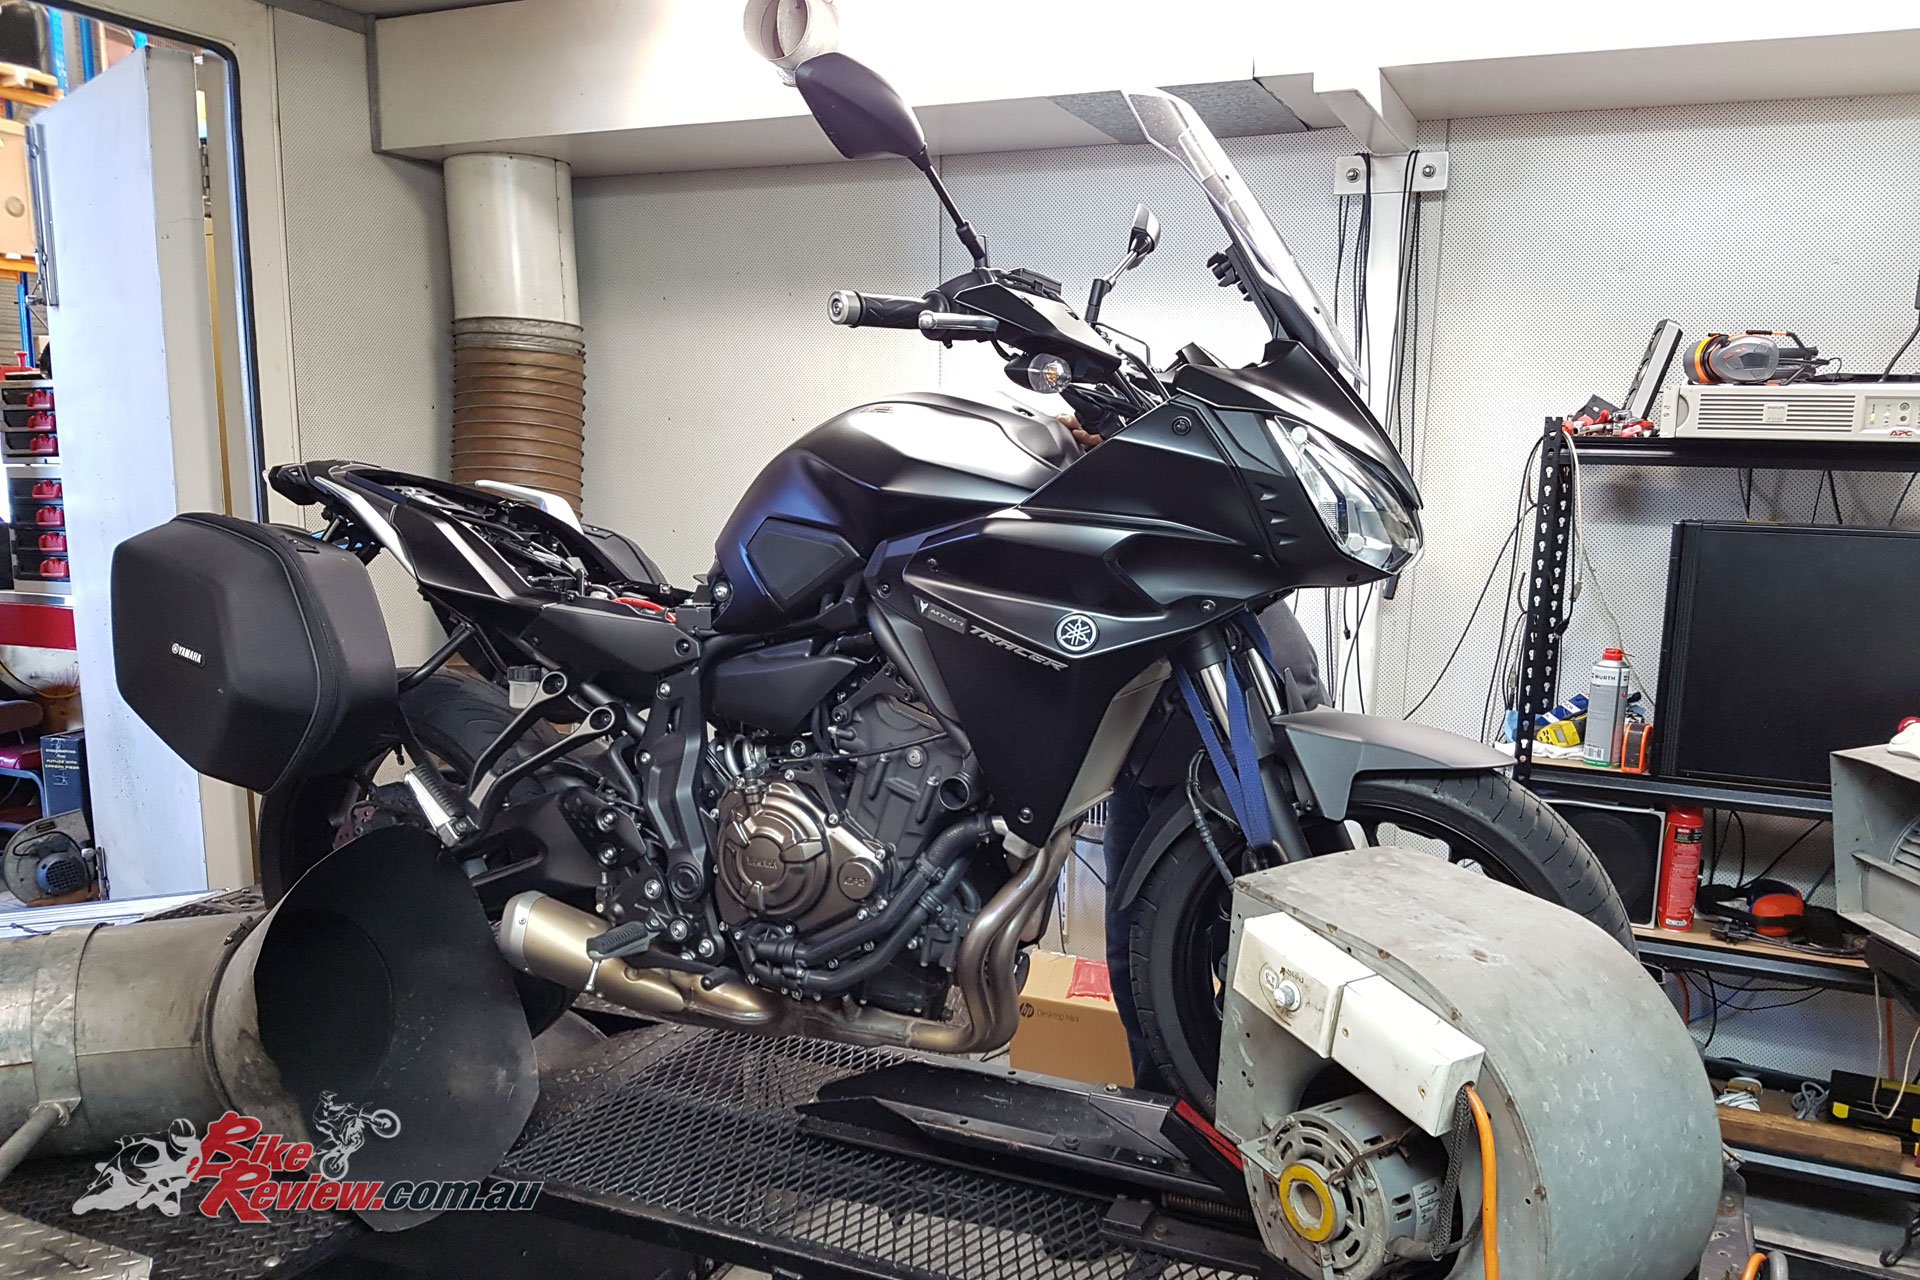 Our Long Term MT-07 Tracer on the dyno at Sydney Dyno